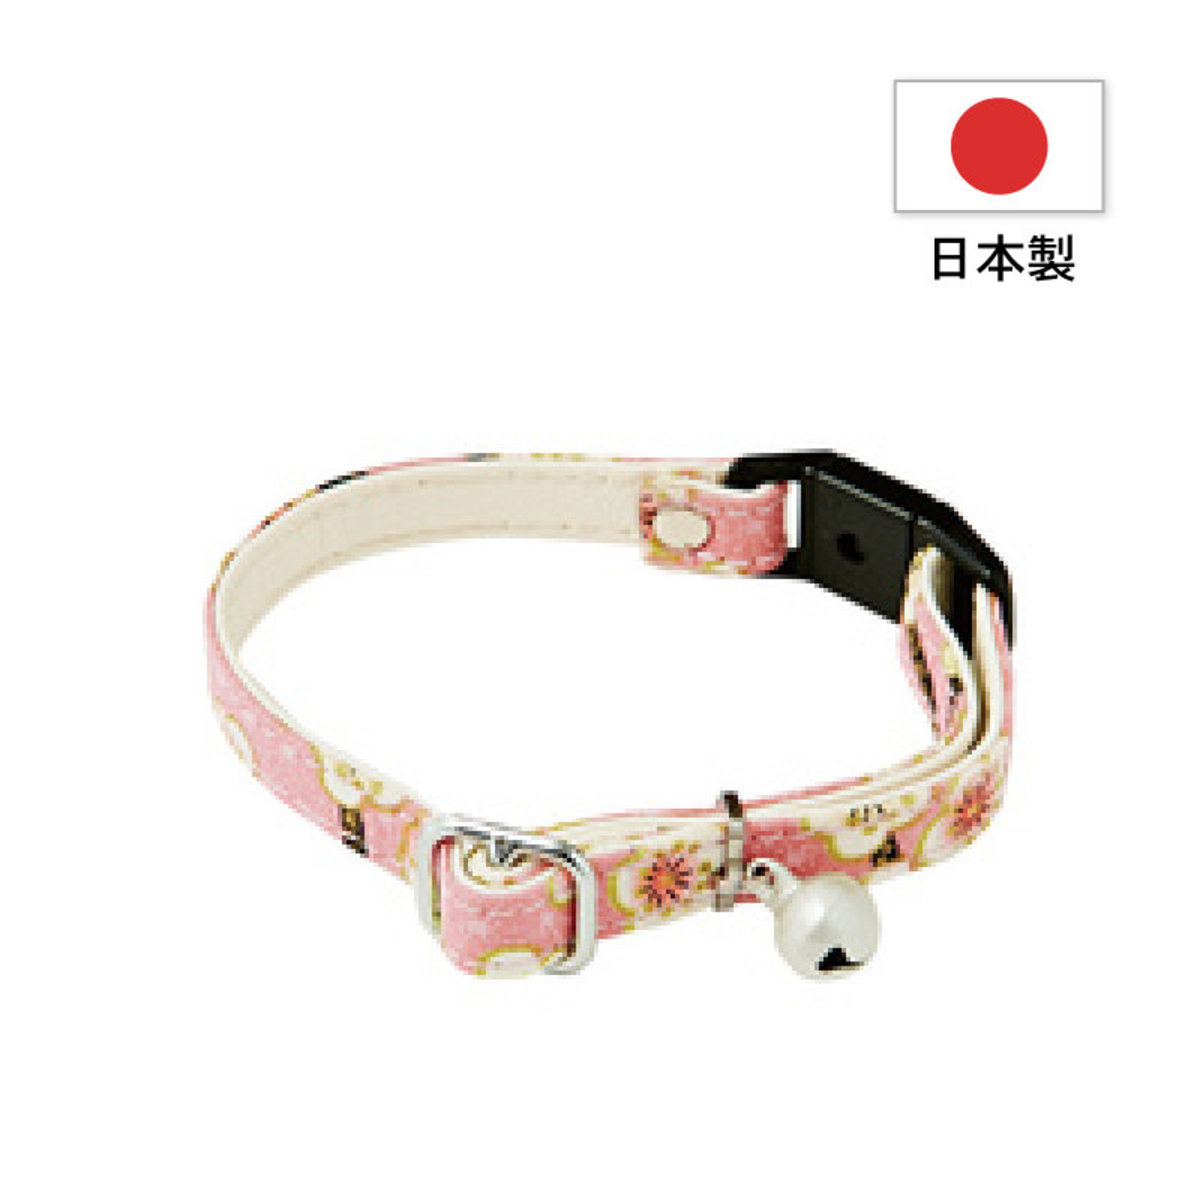 Nyan Gokoro Cat Collar Ume  Peach #J23 (A55023)